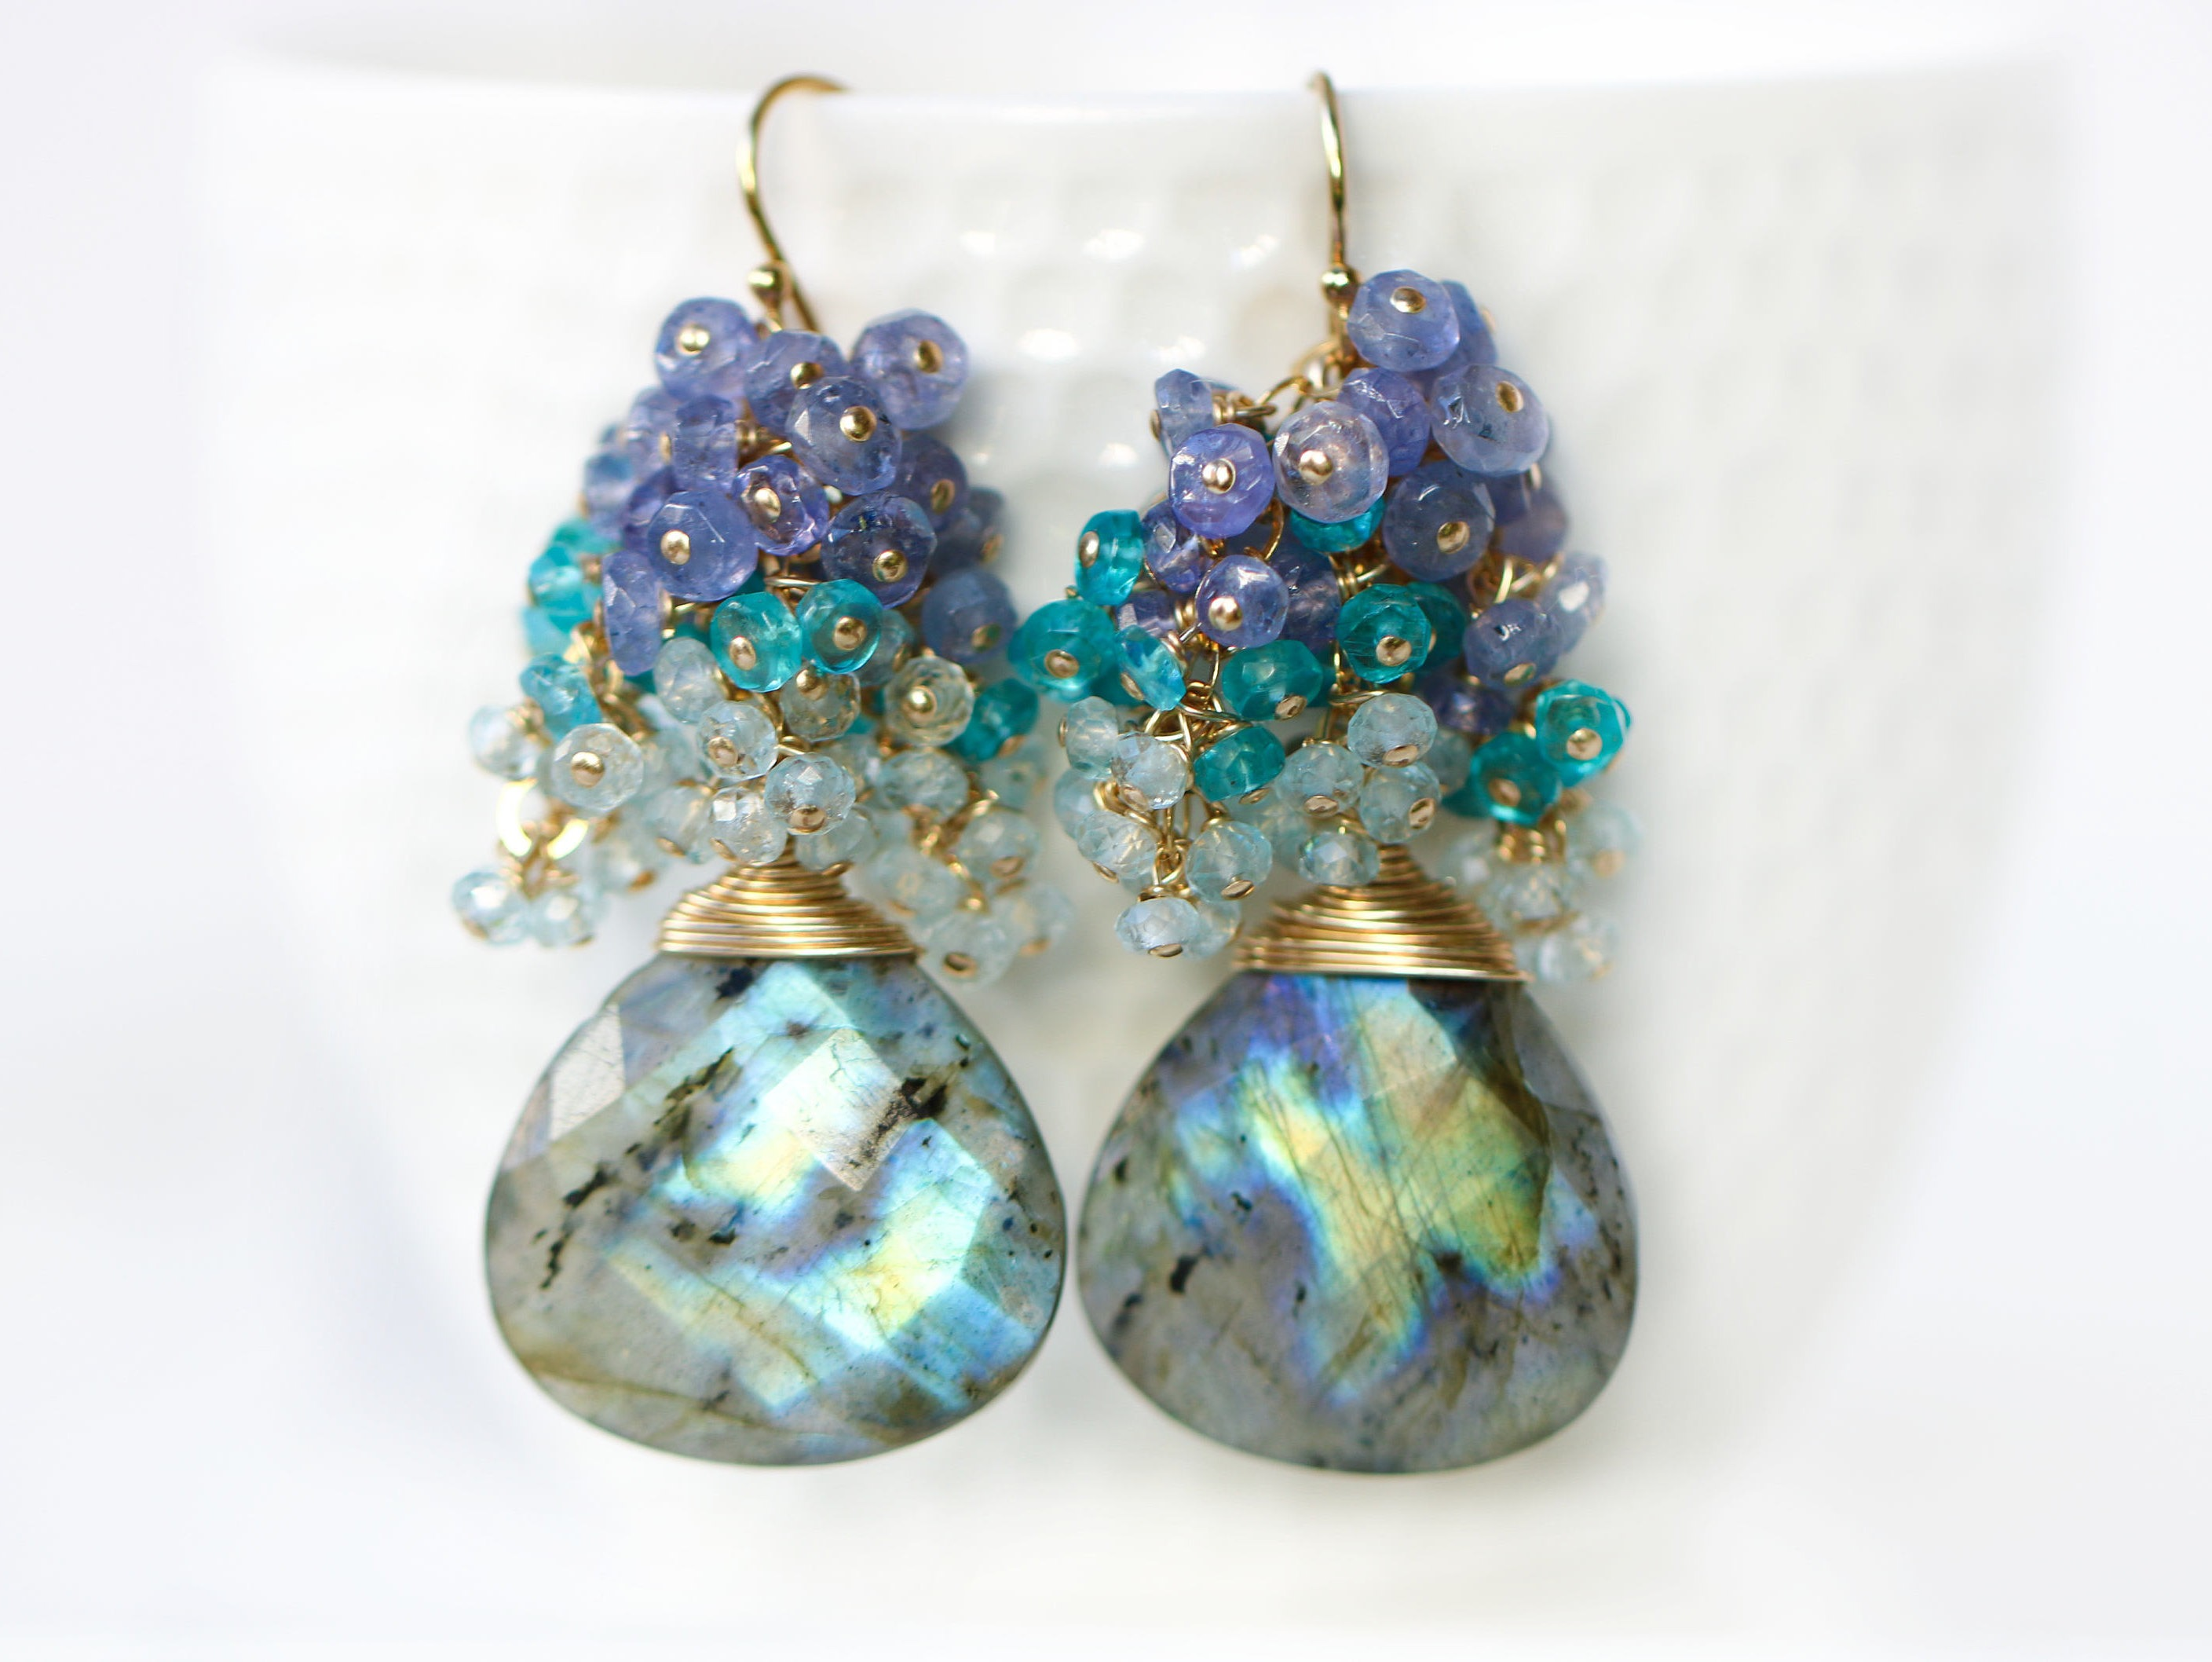 patitte tanzanite products circle sophia earrings zanite yellow drop mini silver epp designyard gold oxidized turkish